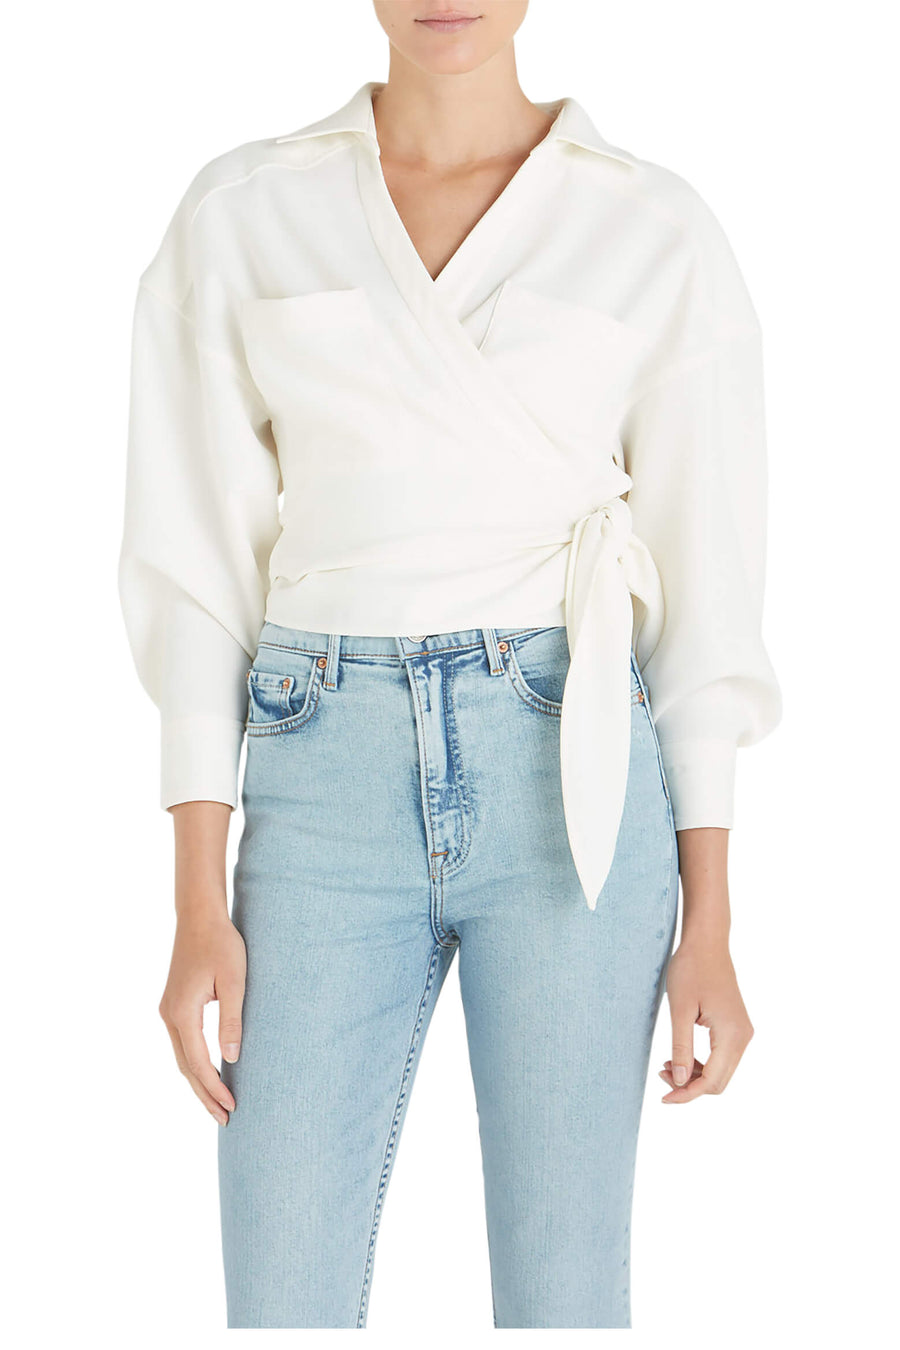 IRO Fiorila Wrap Top White from The New Trend